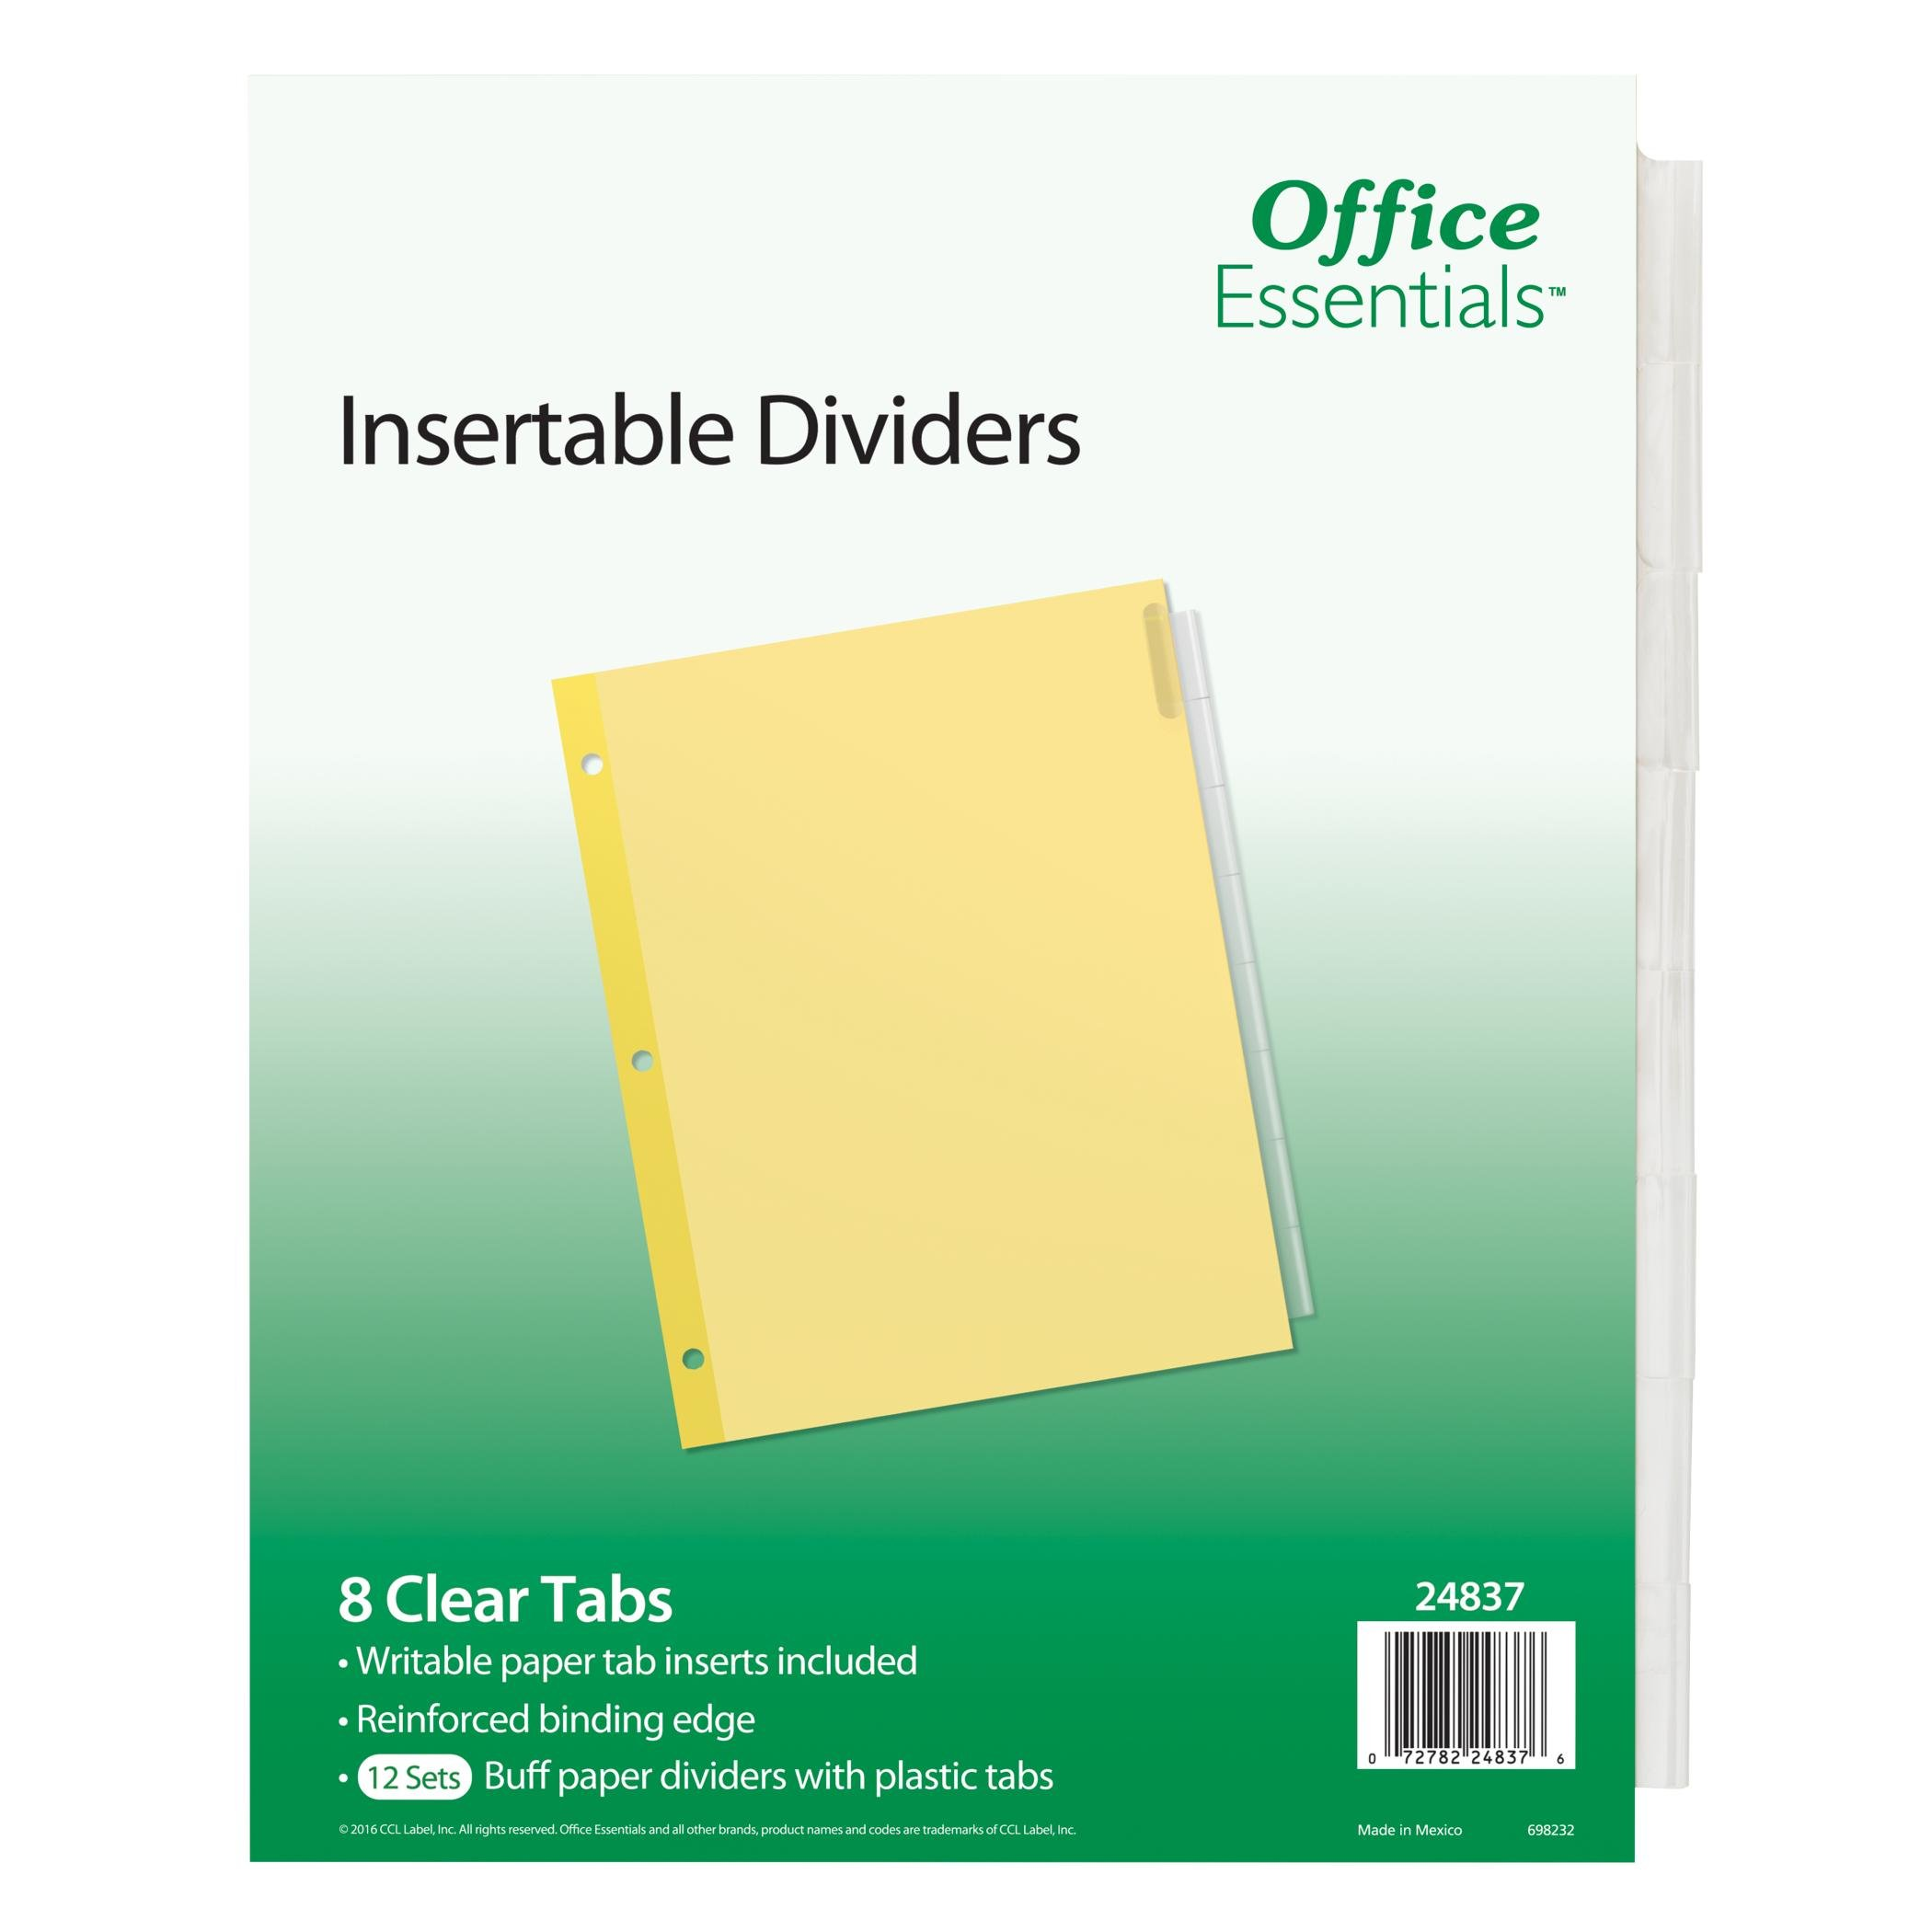 Office Essentials Insertable Dividers, 8-1/2'' x 11'', 8 Tab, Clear Tab, Buff Paper, 12 Pack (24837)